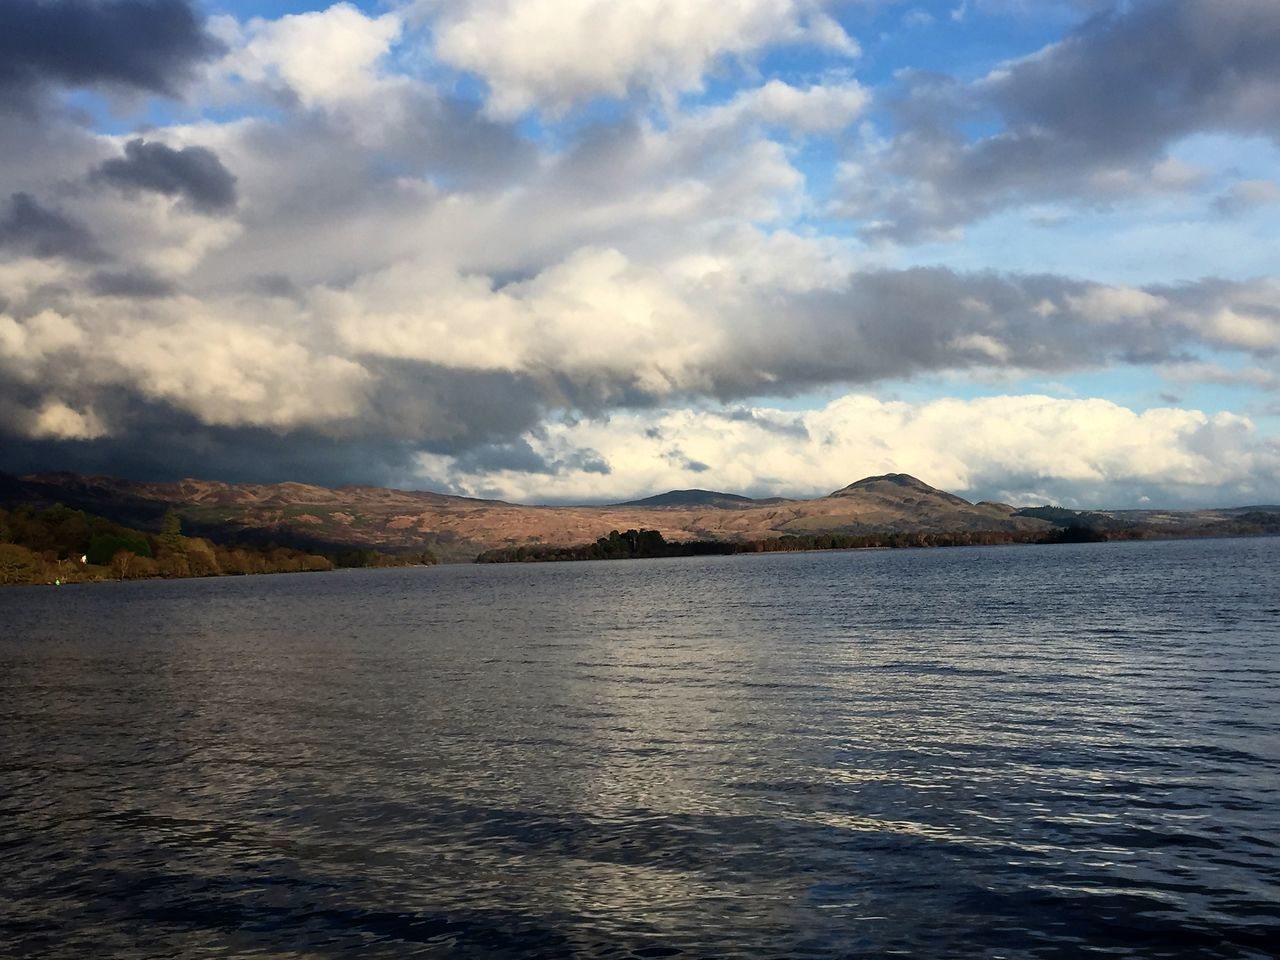 Beauty In Nature Day Lake LochLomond Mountain Mountain Range Nature No People Outdoorlife Outdoors Rural Scene Scenics Sky Sky And Clouds VisitScotland Water Waterfront